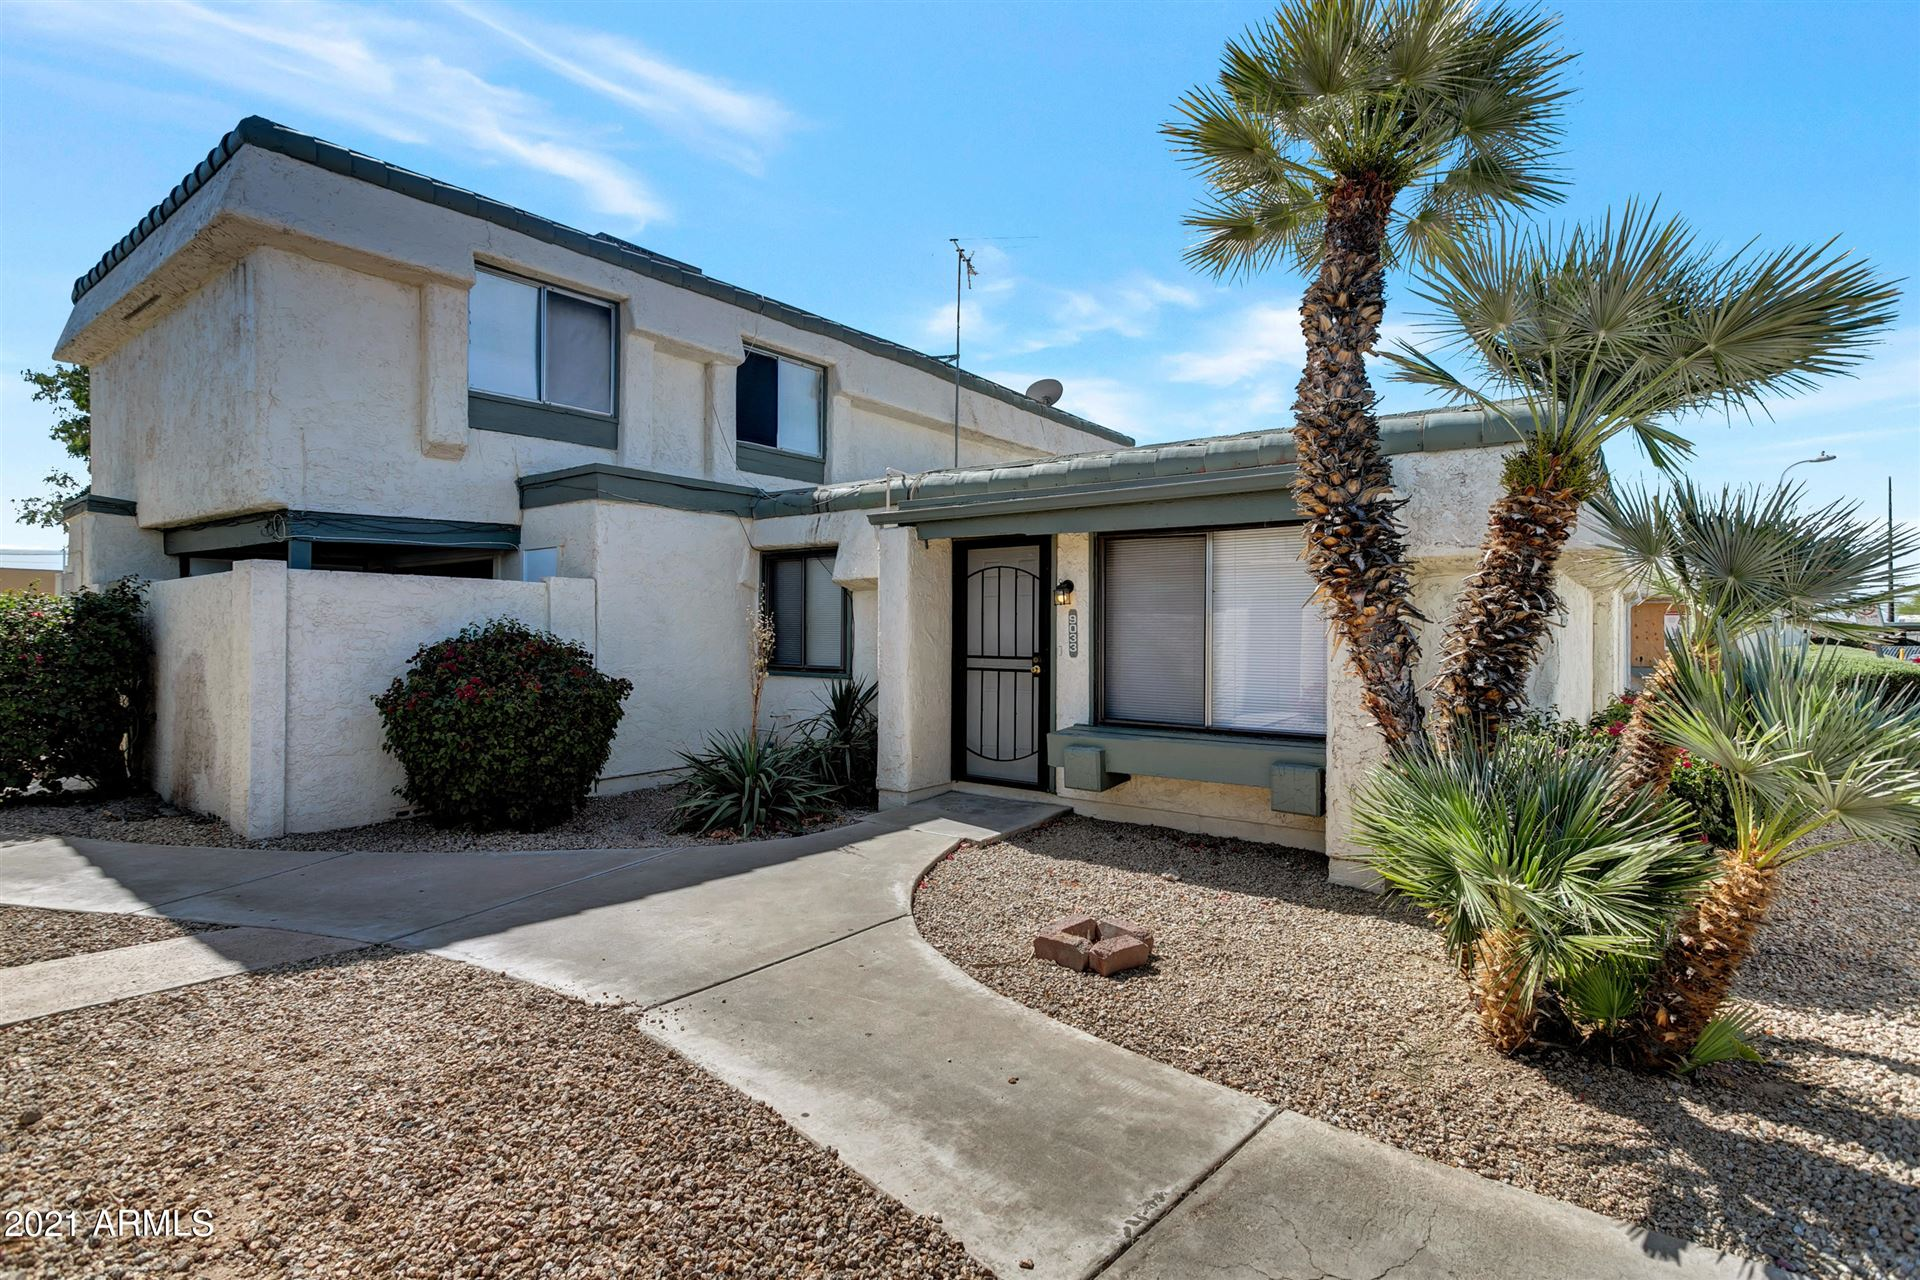 9033 N 52nd Avenue, Glendale, AZ 85302 - MLS#: 6234961